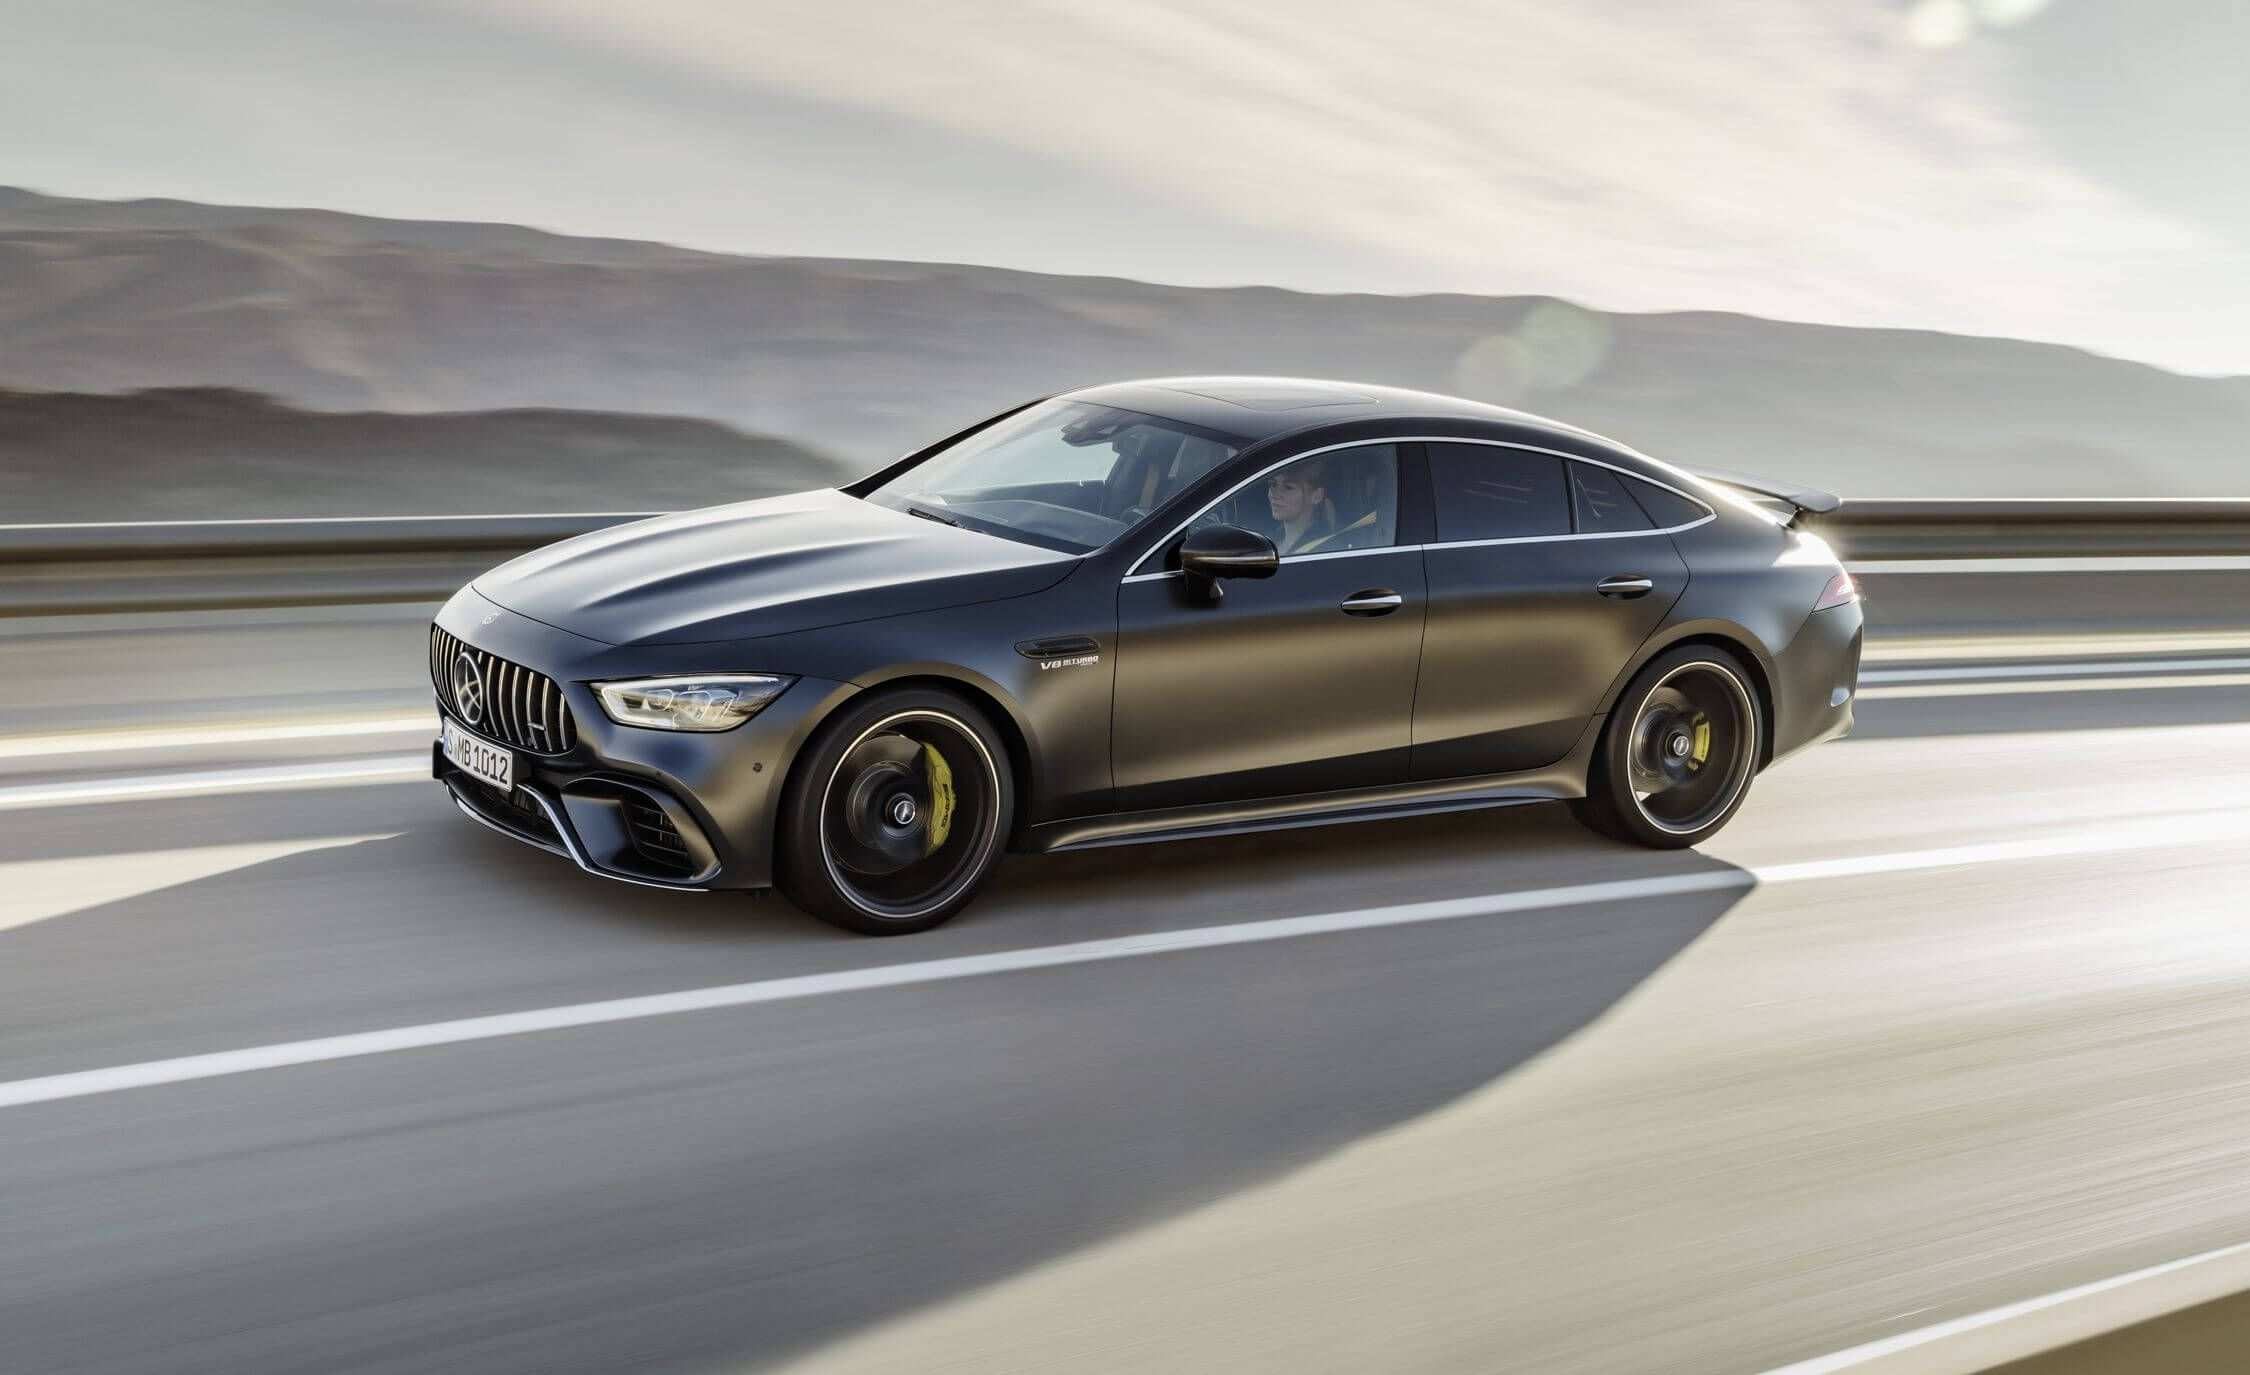 67 The Best Mercedes 2019 Cars Engine Prices with Best Mercedes 2019 Cars Engine